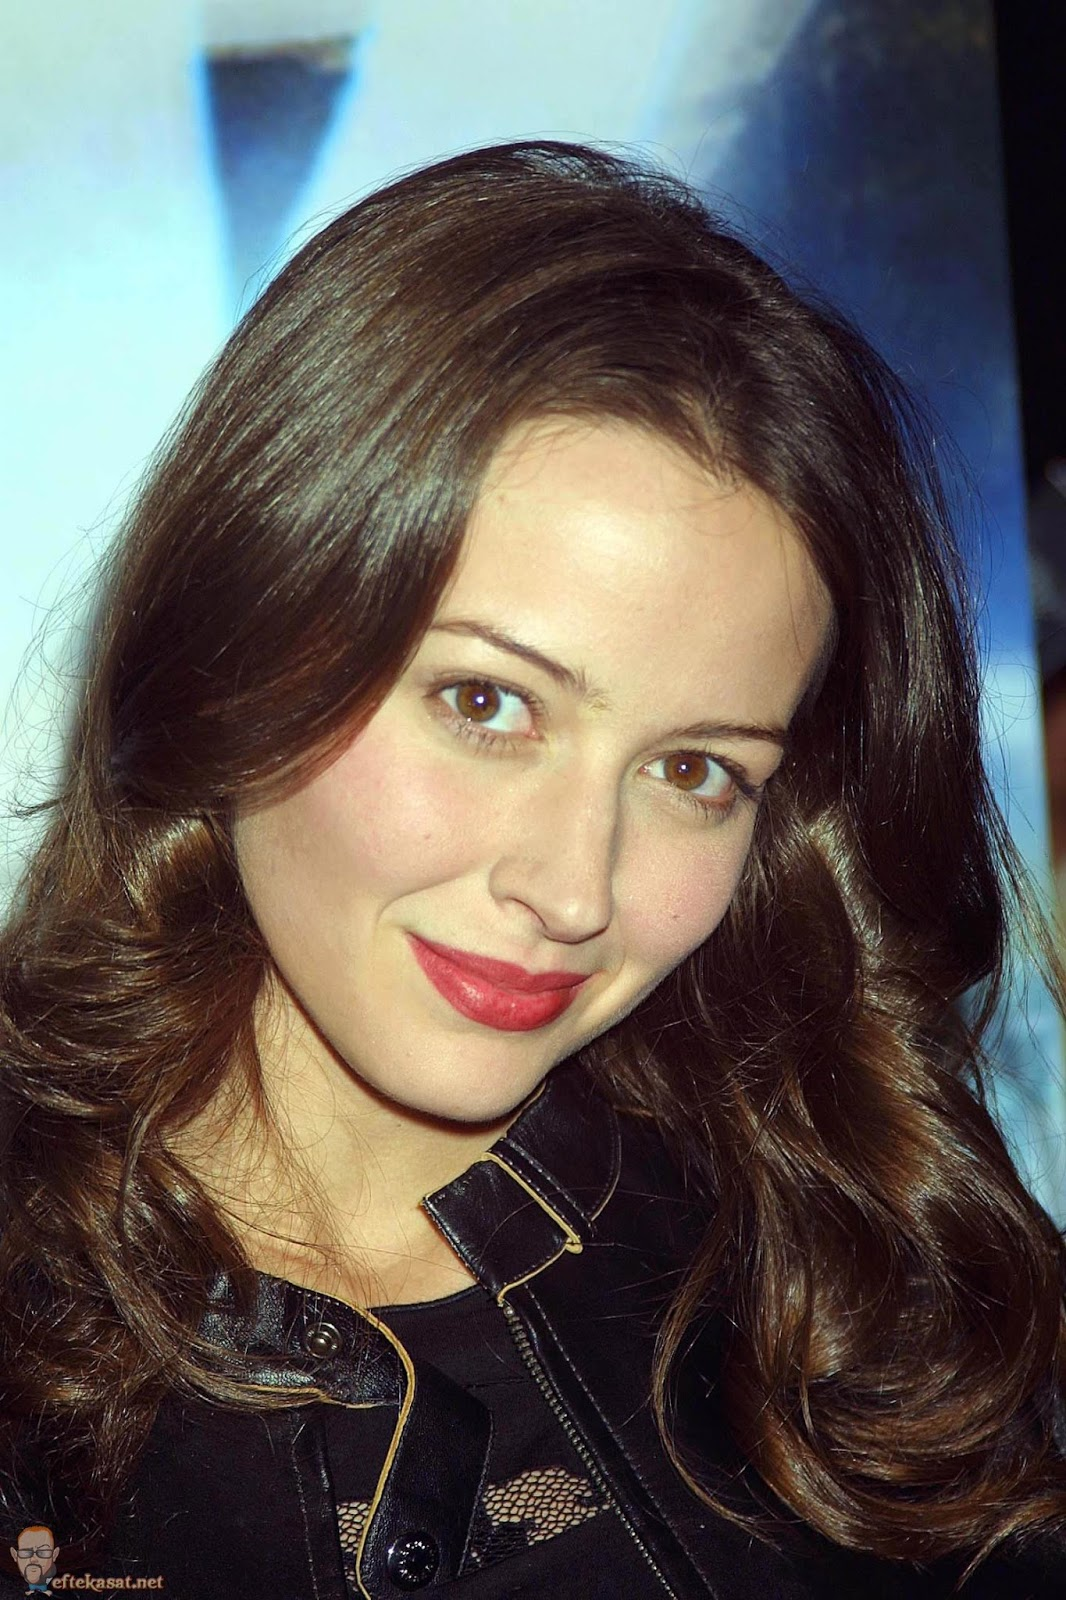 Amy Acker HD Wallpapers Free Download | Theroyalspeaker